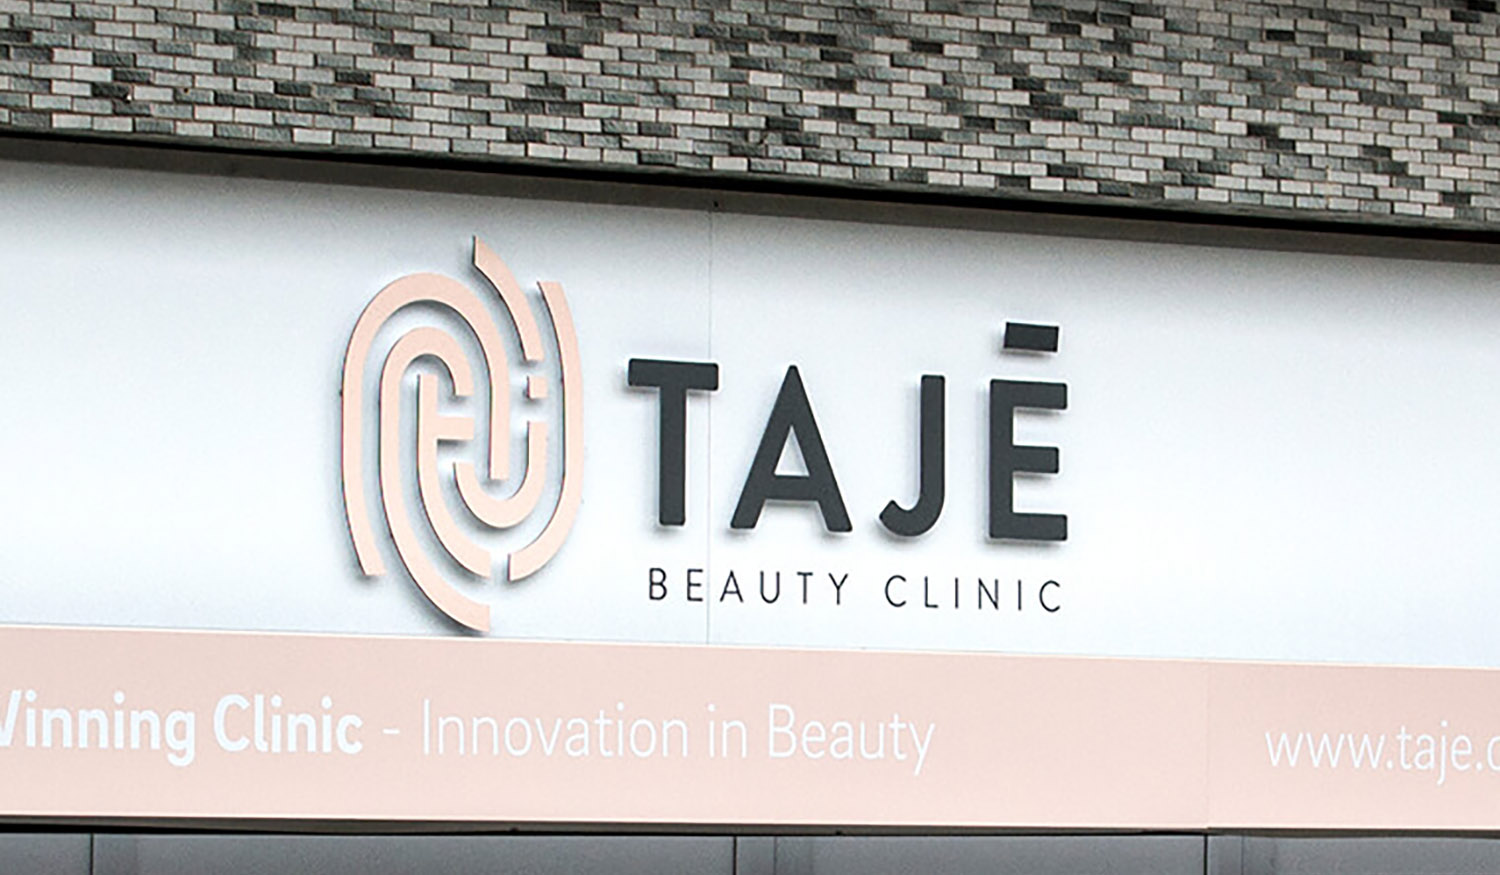 shop front signage design for beauty salon